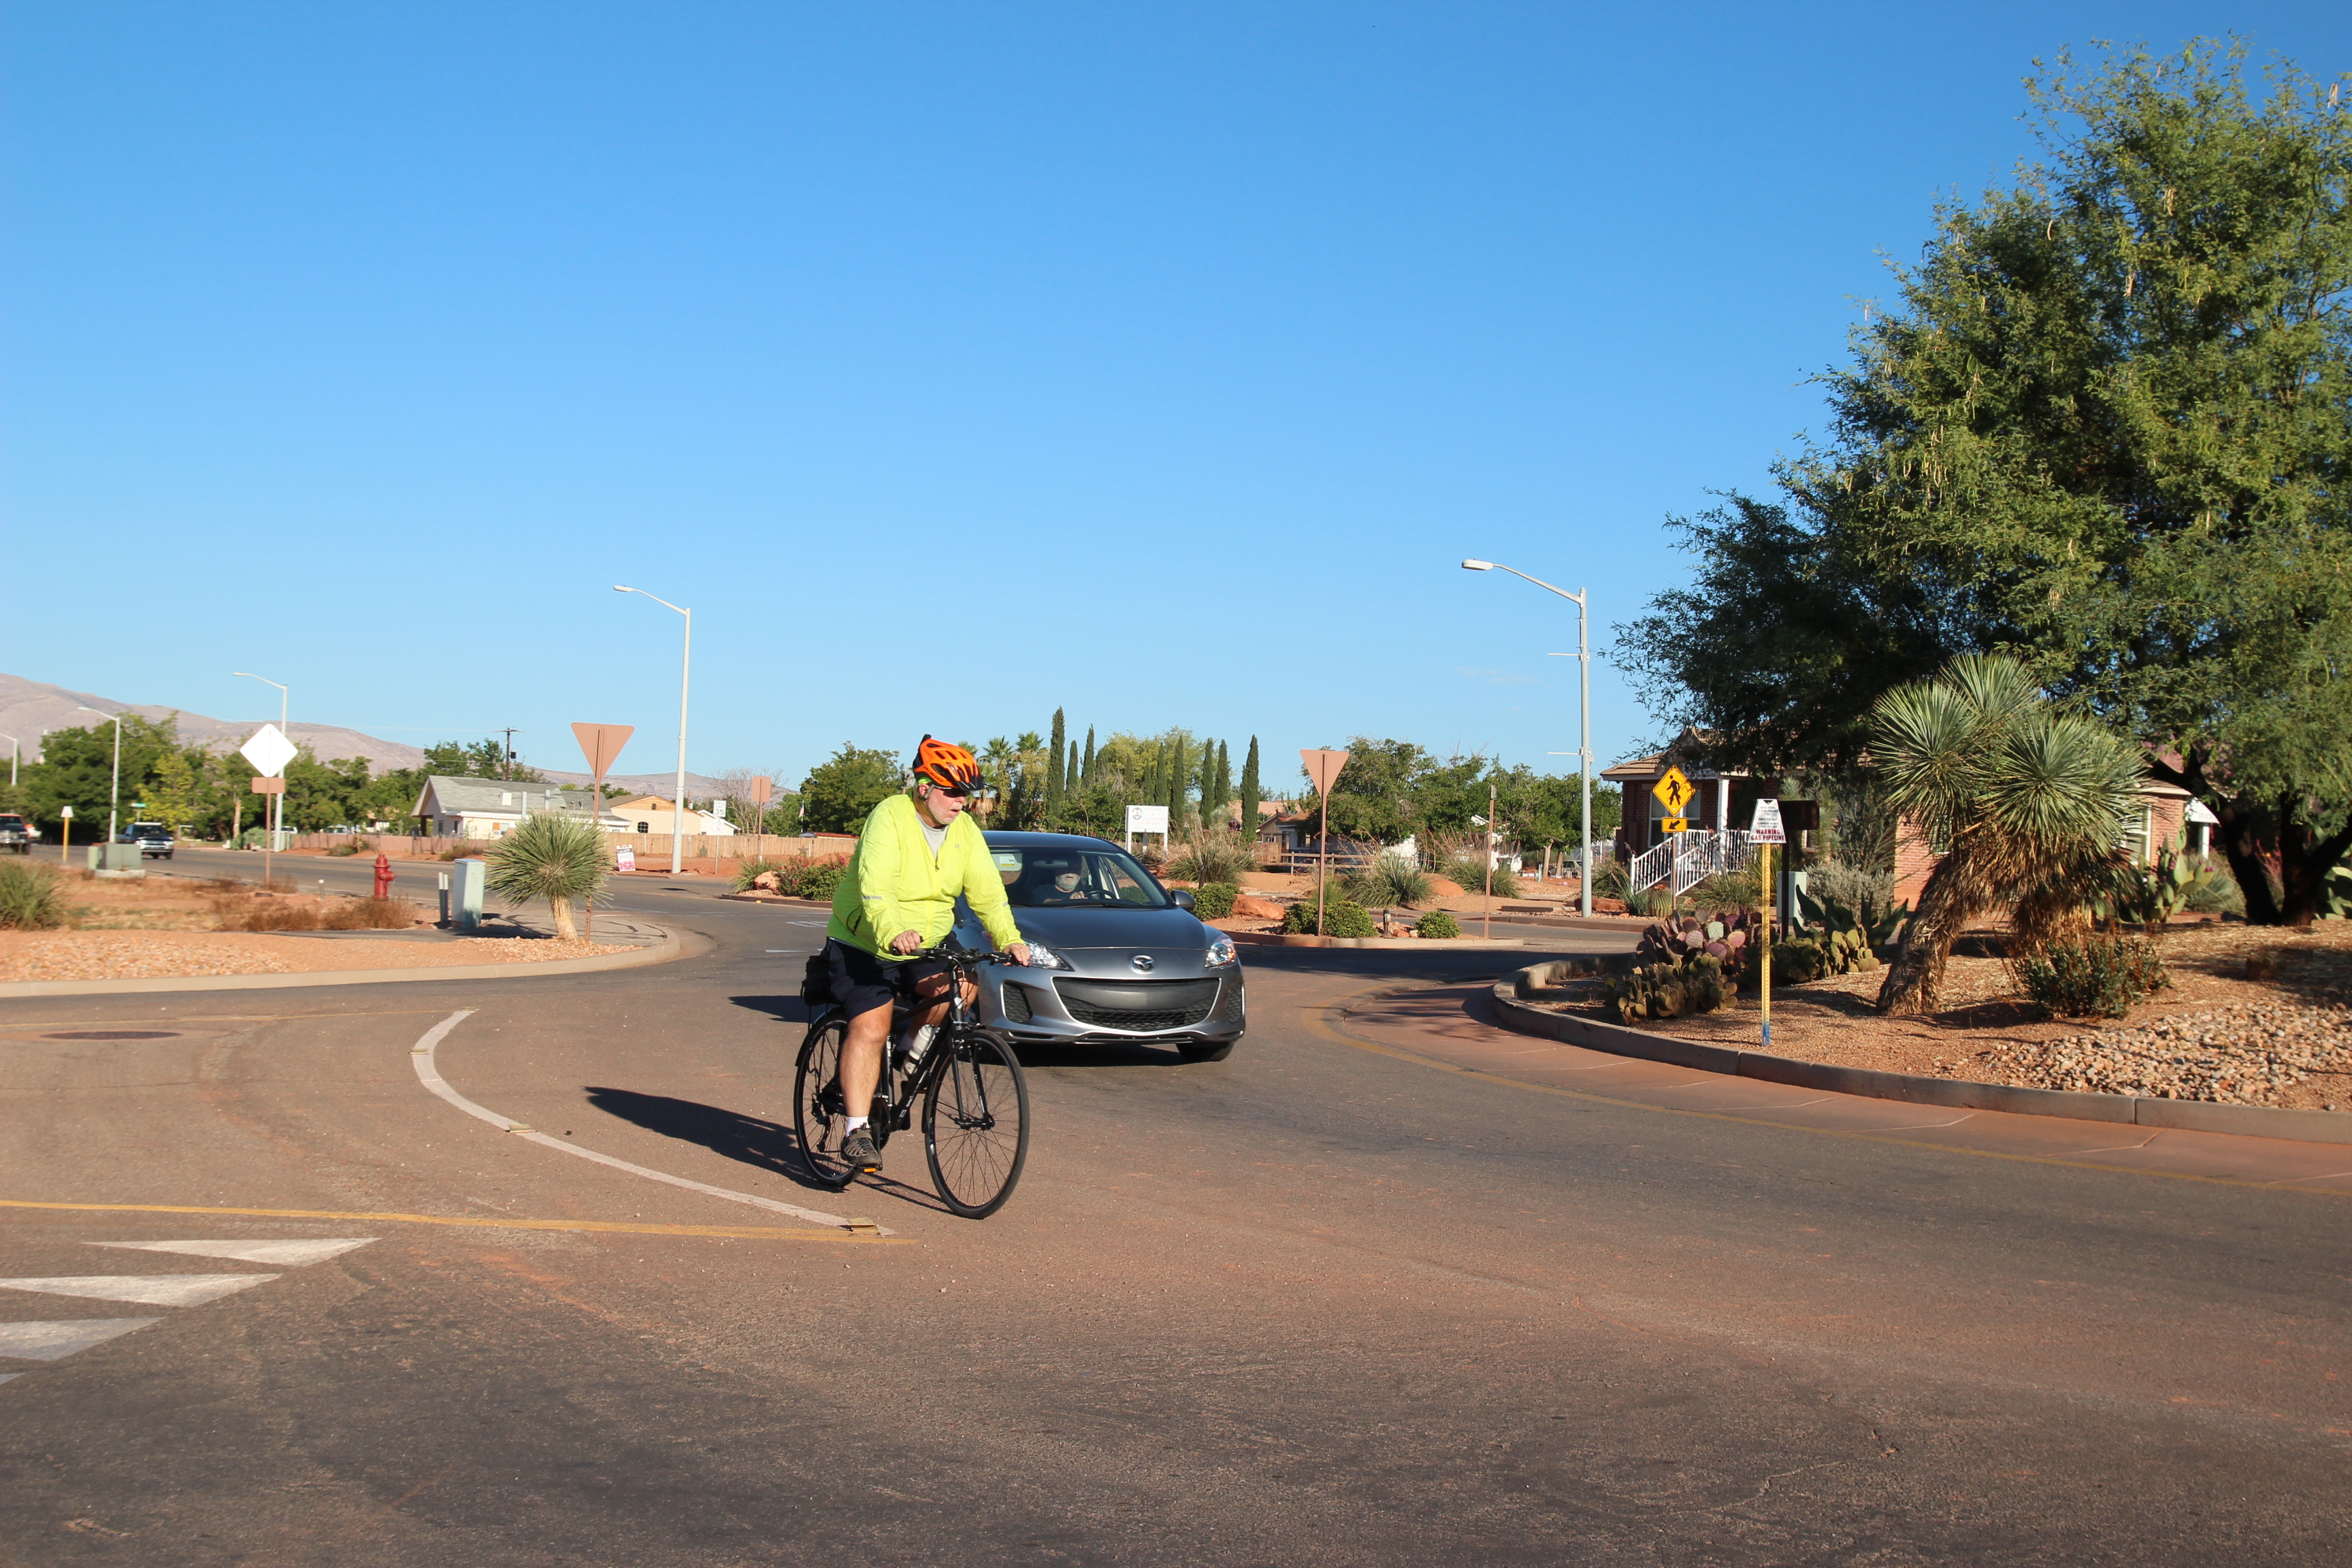 Tim Tabor rides through the roundabout at Center Street and 200 East in Ivins. Tabor is riding straight through. He is positioned within the lane, making him more visible to any vehicle that might enter to his right (from entrance point at bottom left of photo) and to the vehicle behind him. Ivins, Utah, Aug. 31, 2016 | Photo courtesy of Tim Tabor, St. George News